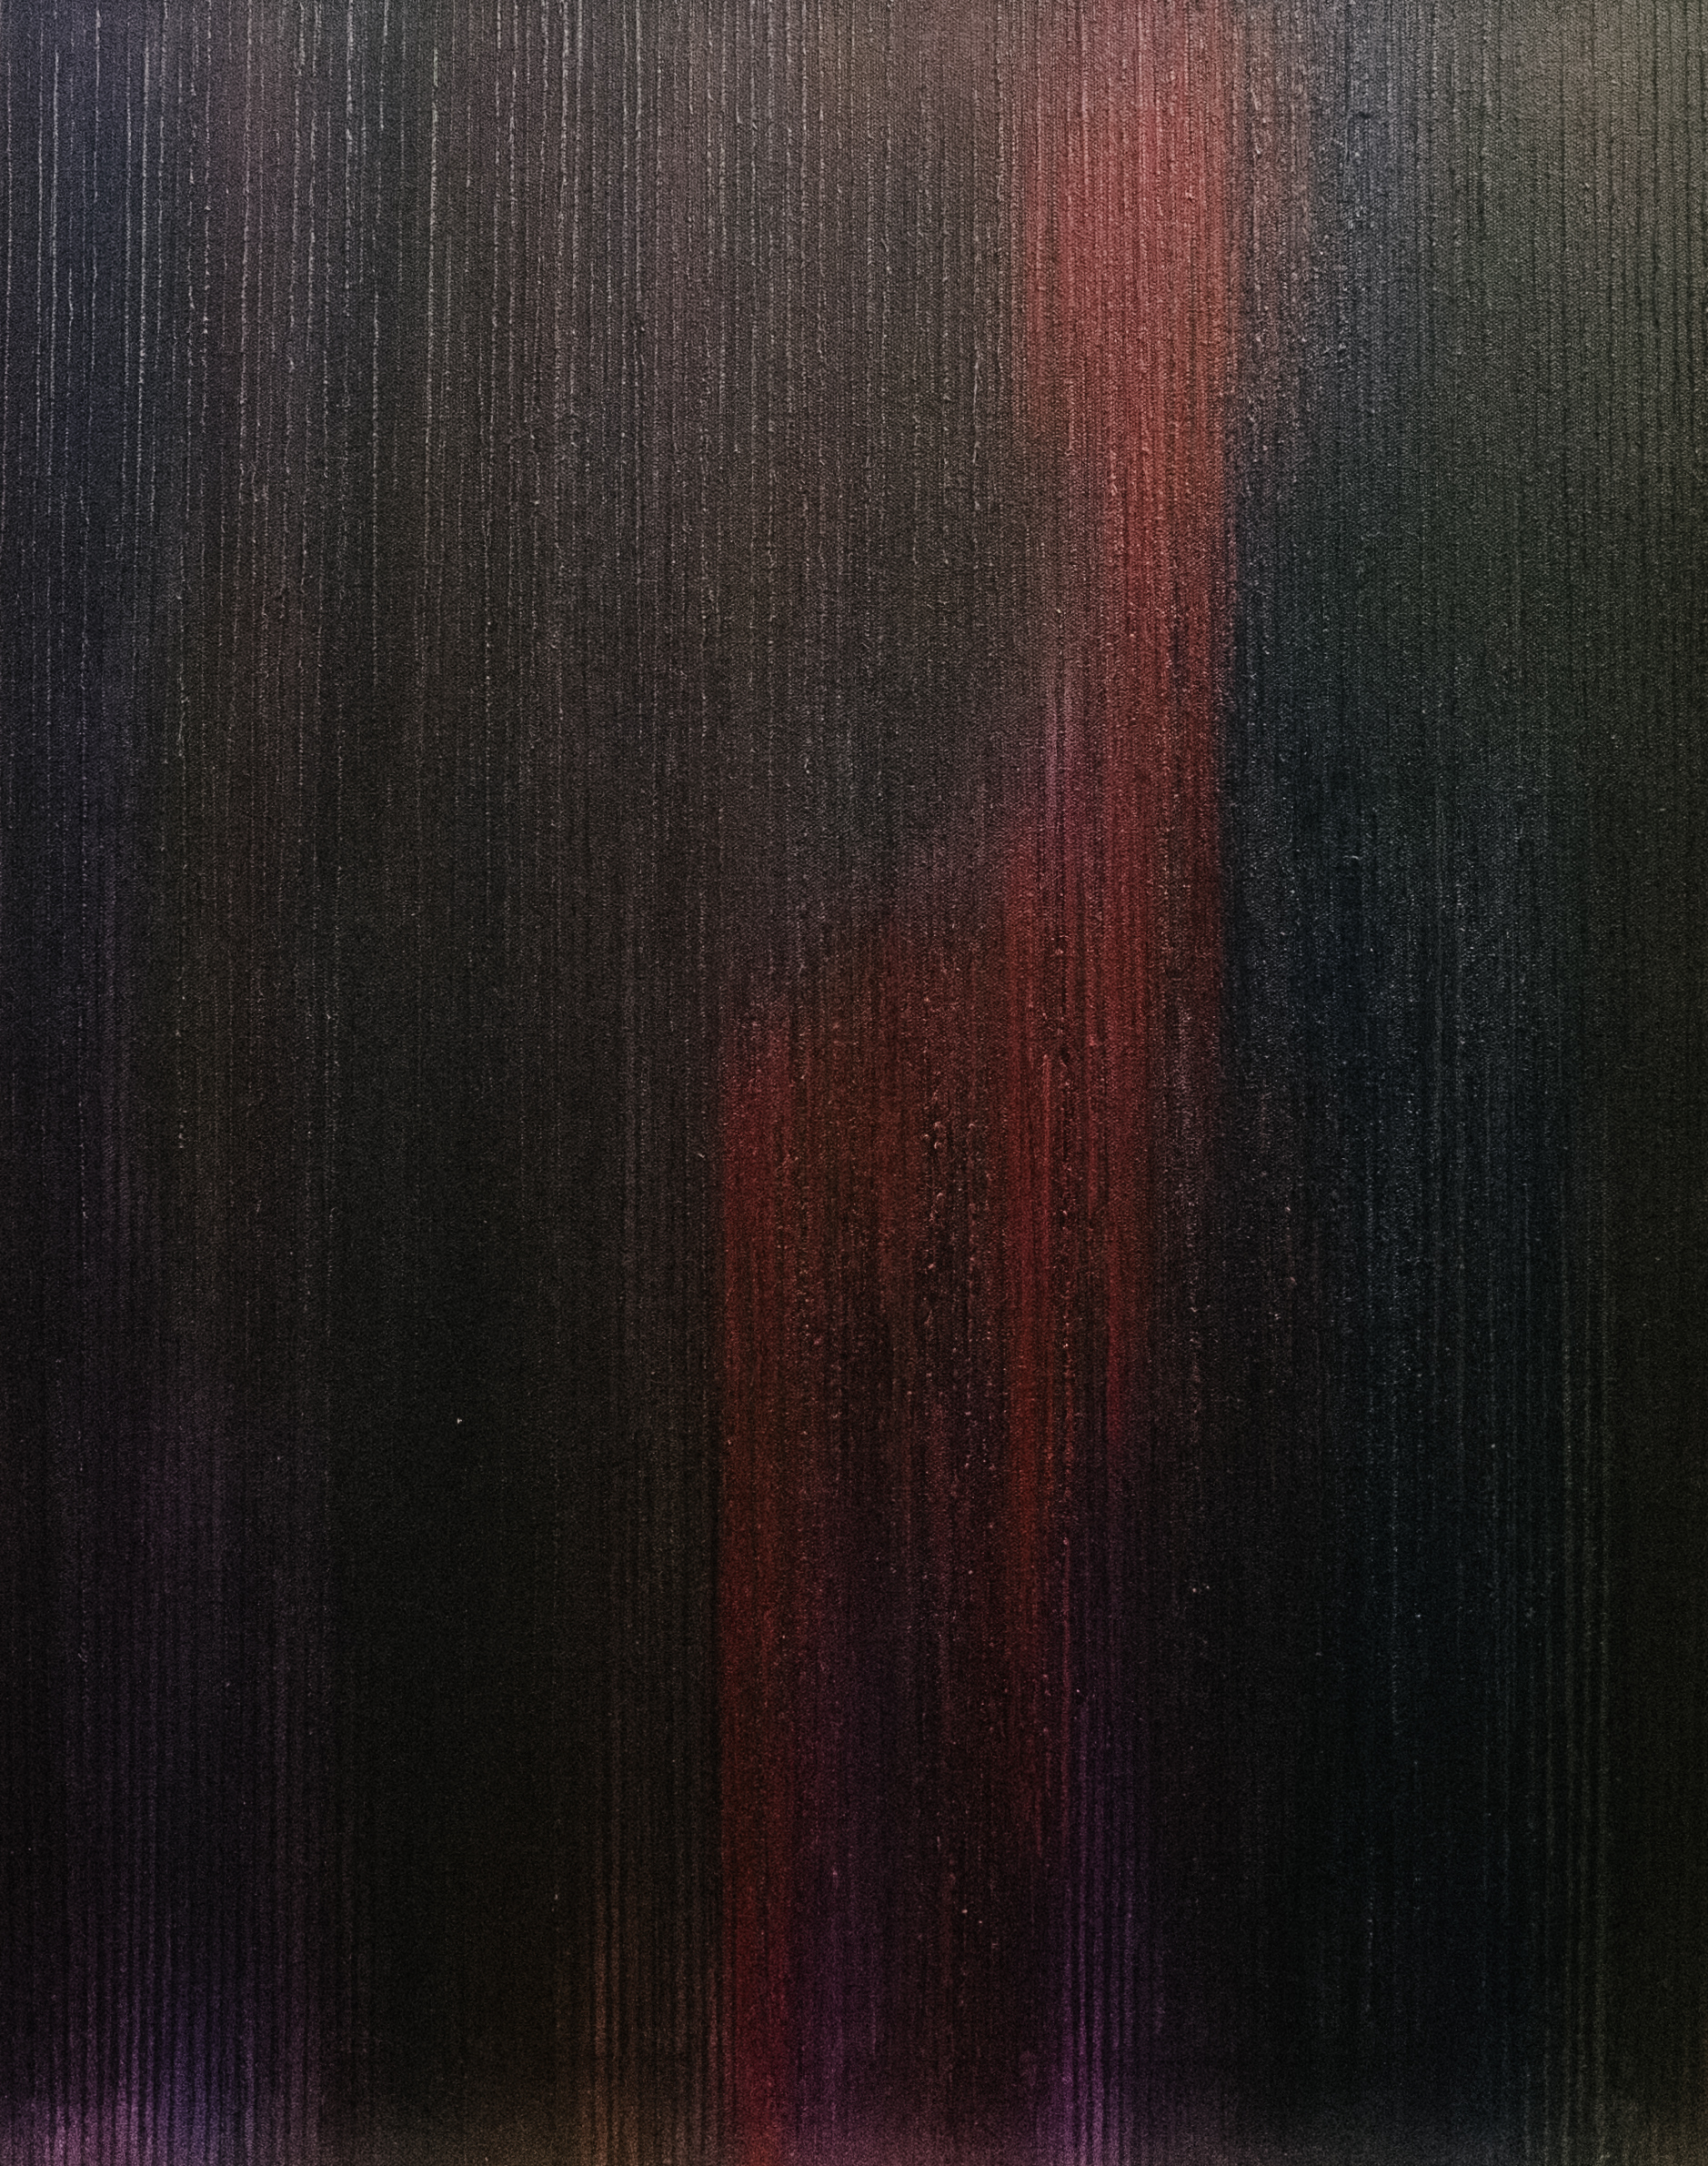 Emergence V - Red/Brown/Purple -2016